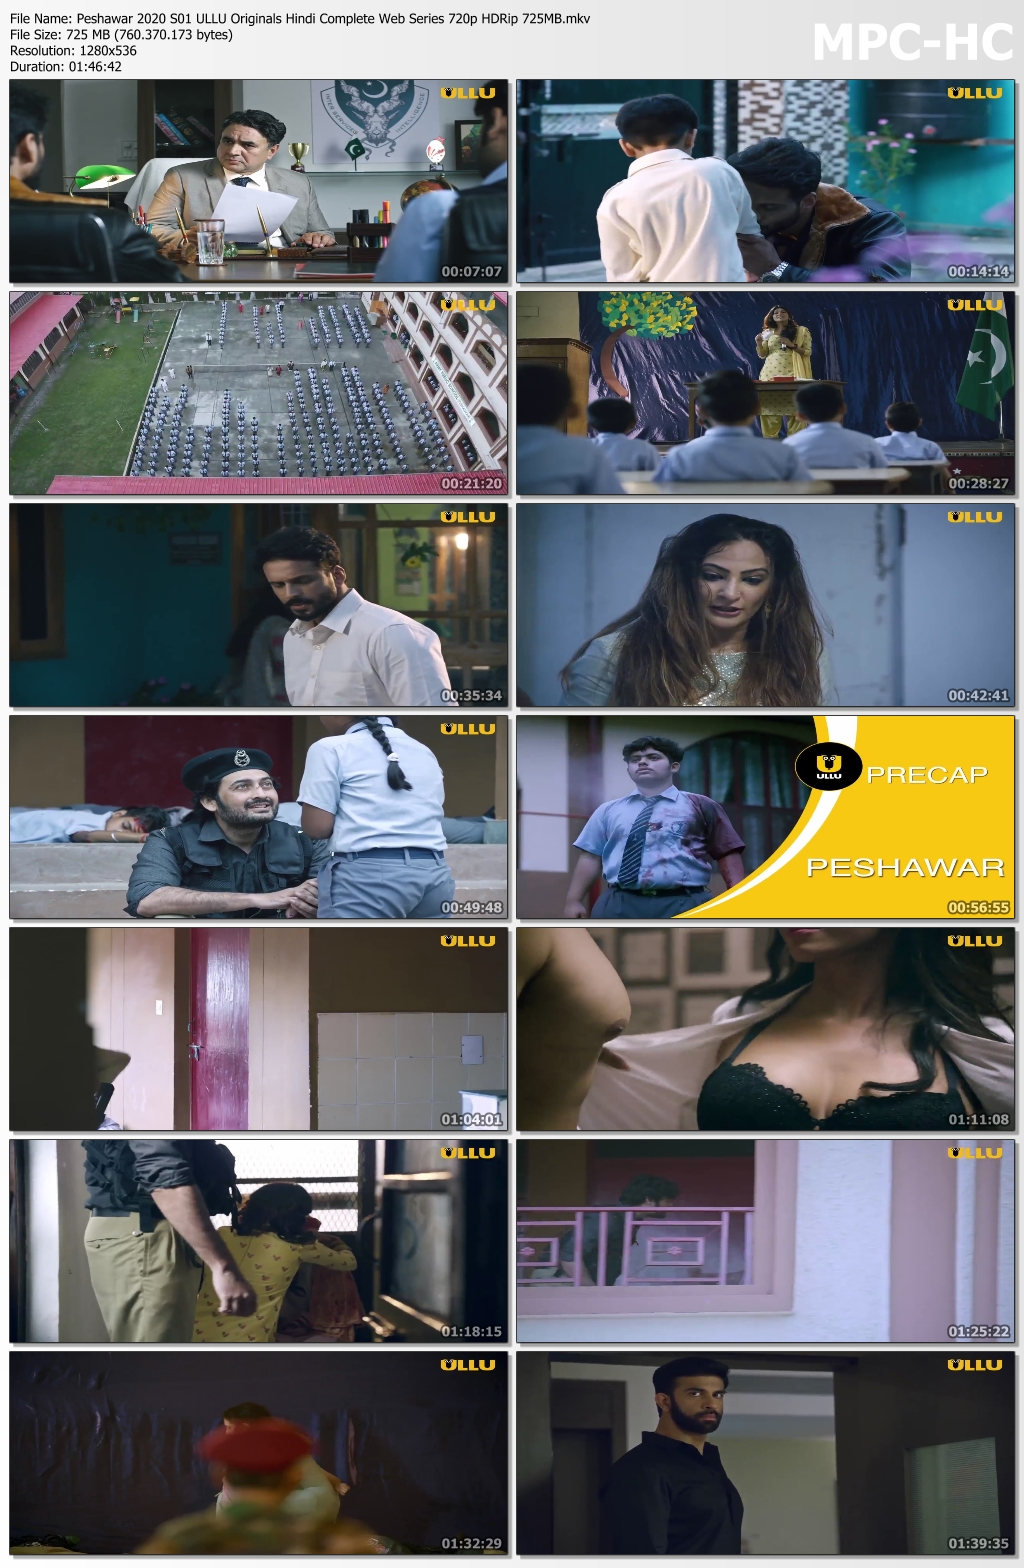 Peshawar-2020-S01-ULLU-Originals-Hindi-Complete-Web-Series-720p-HDRip-725-MB-mkv-thumbs